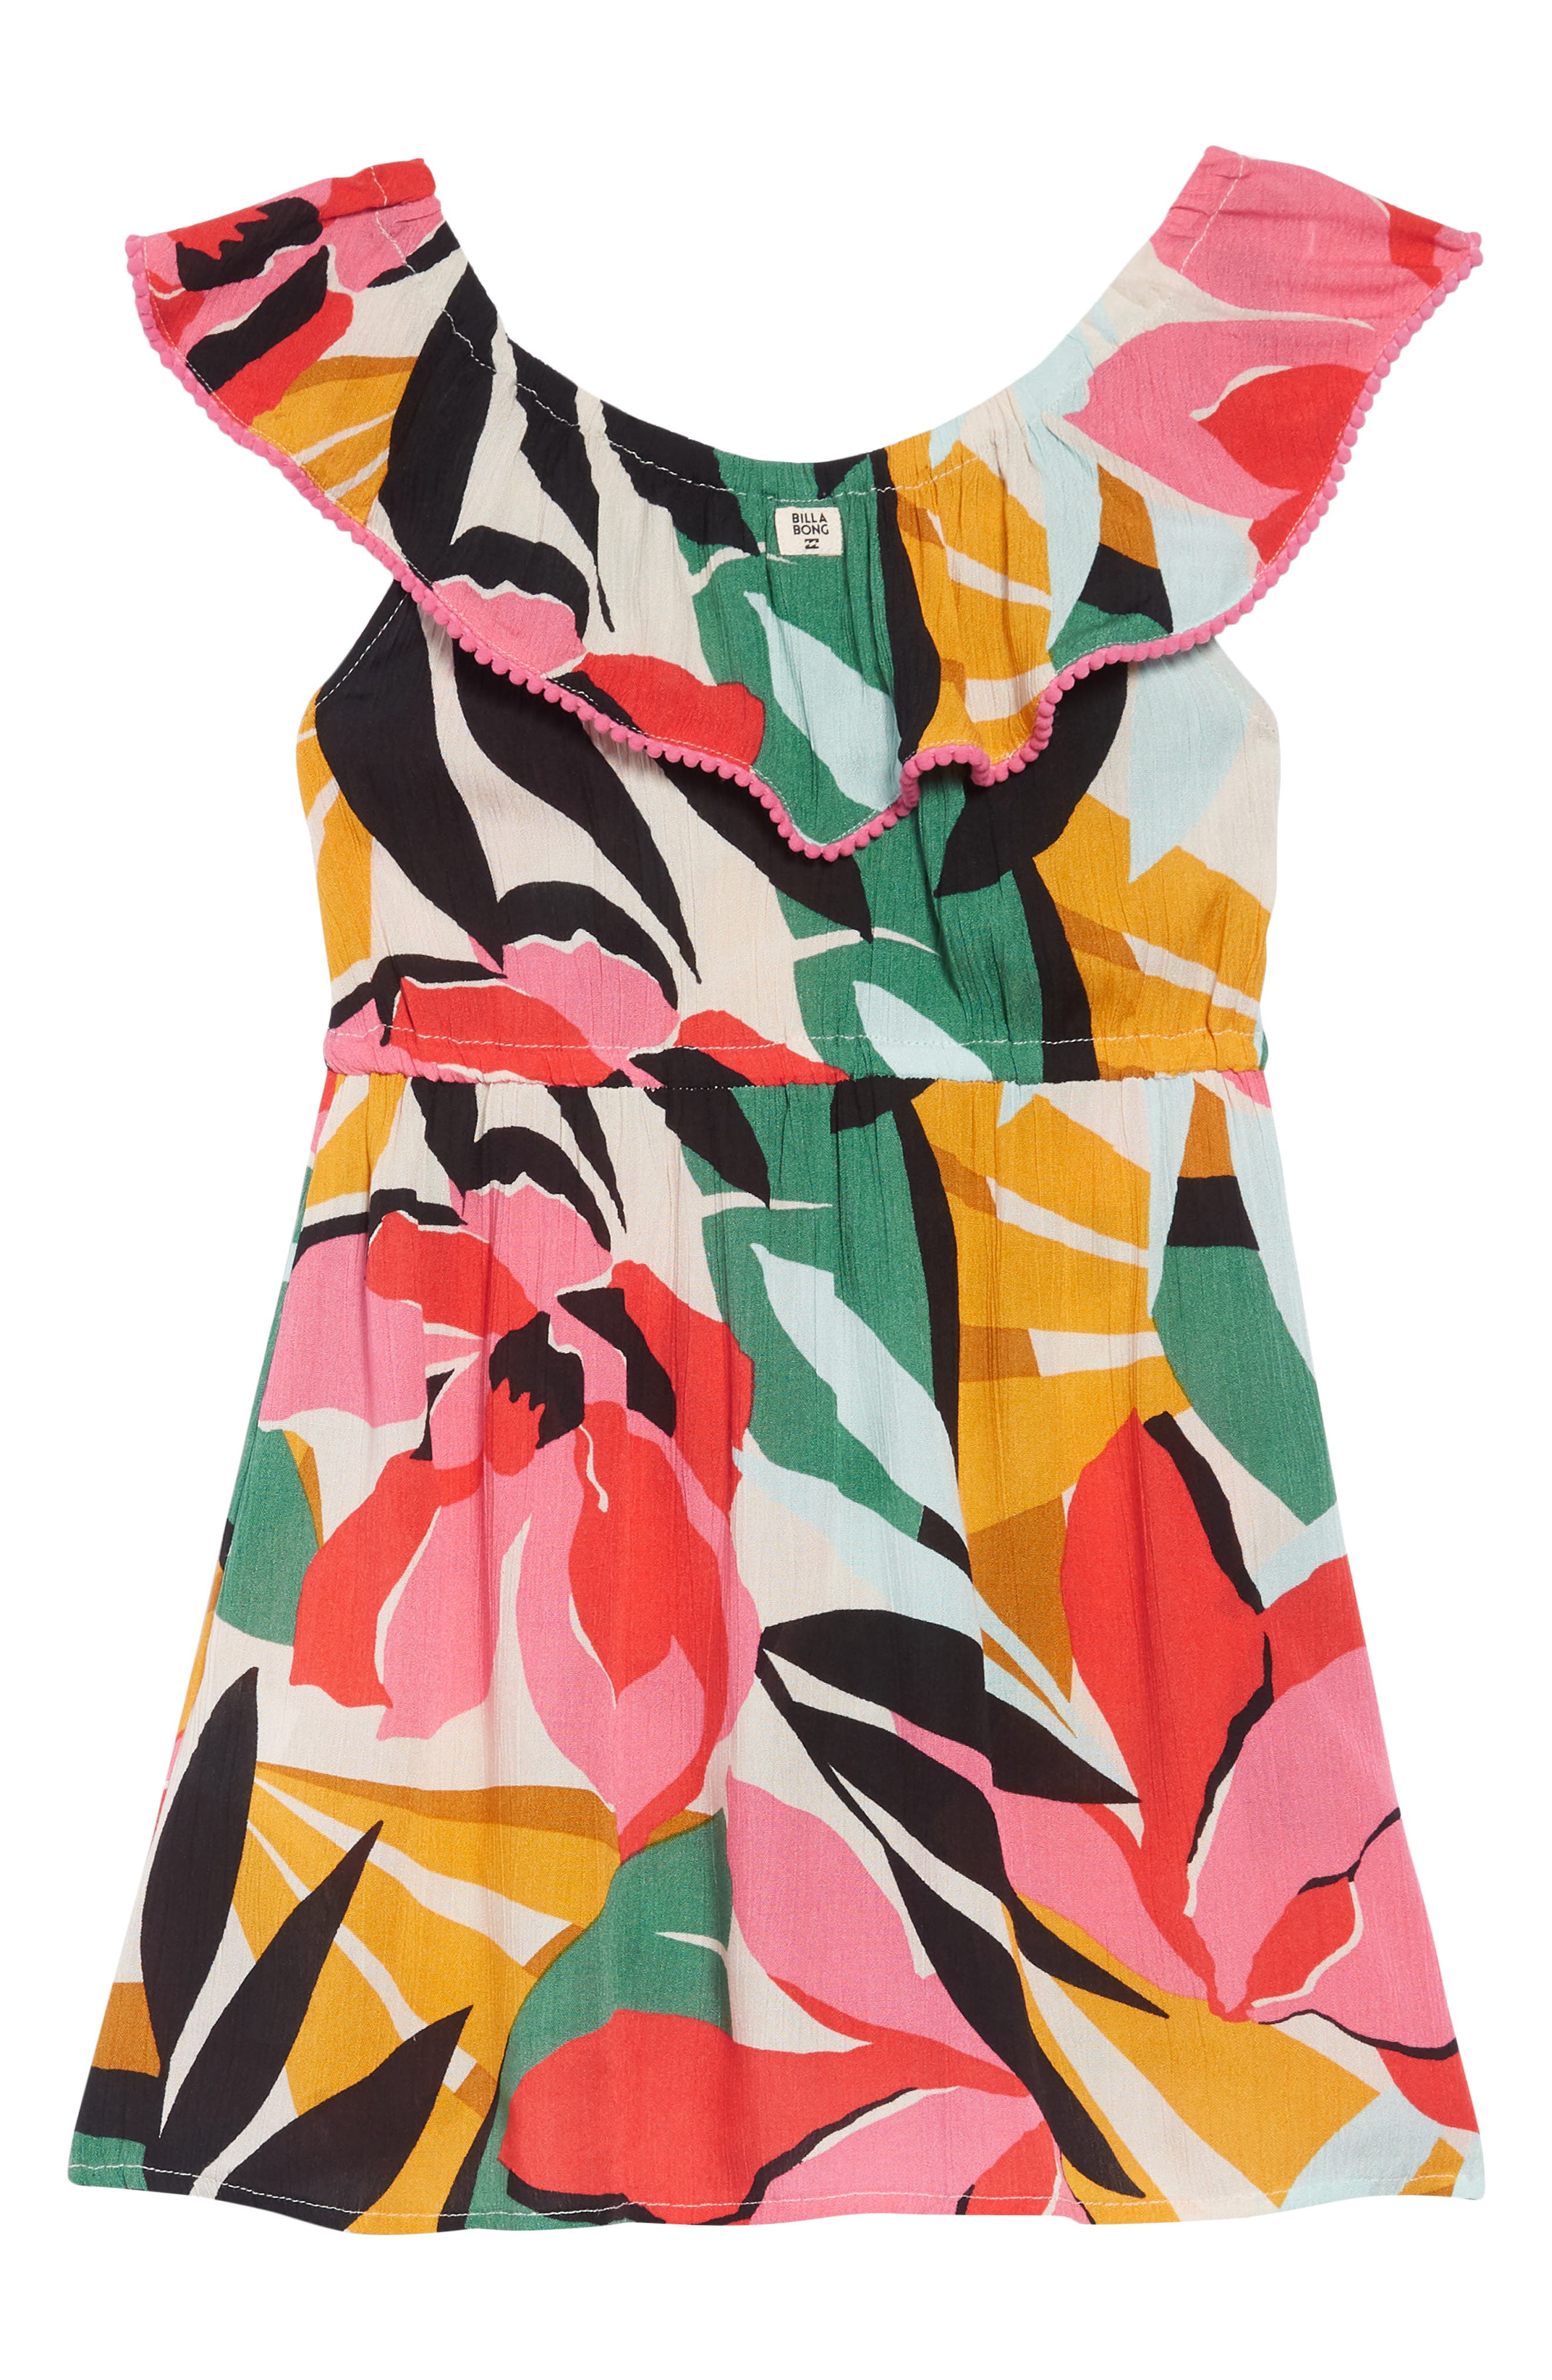 BILLABONG, Under the Palms Ruffle Dress, Main thumbnail 1, color, MULTI